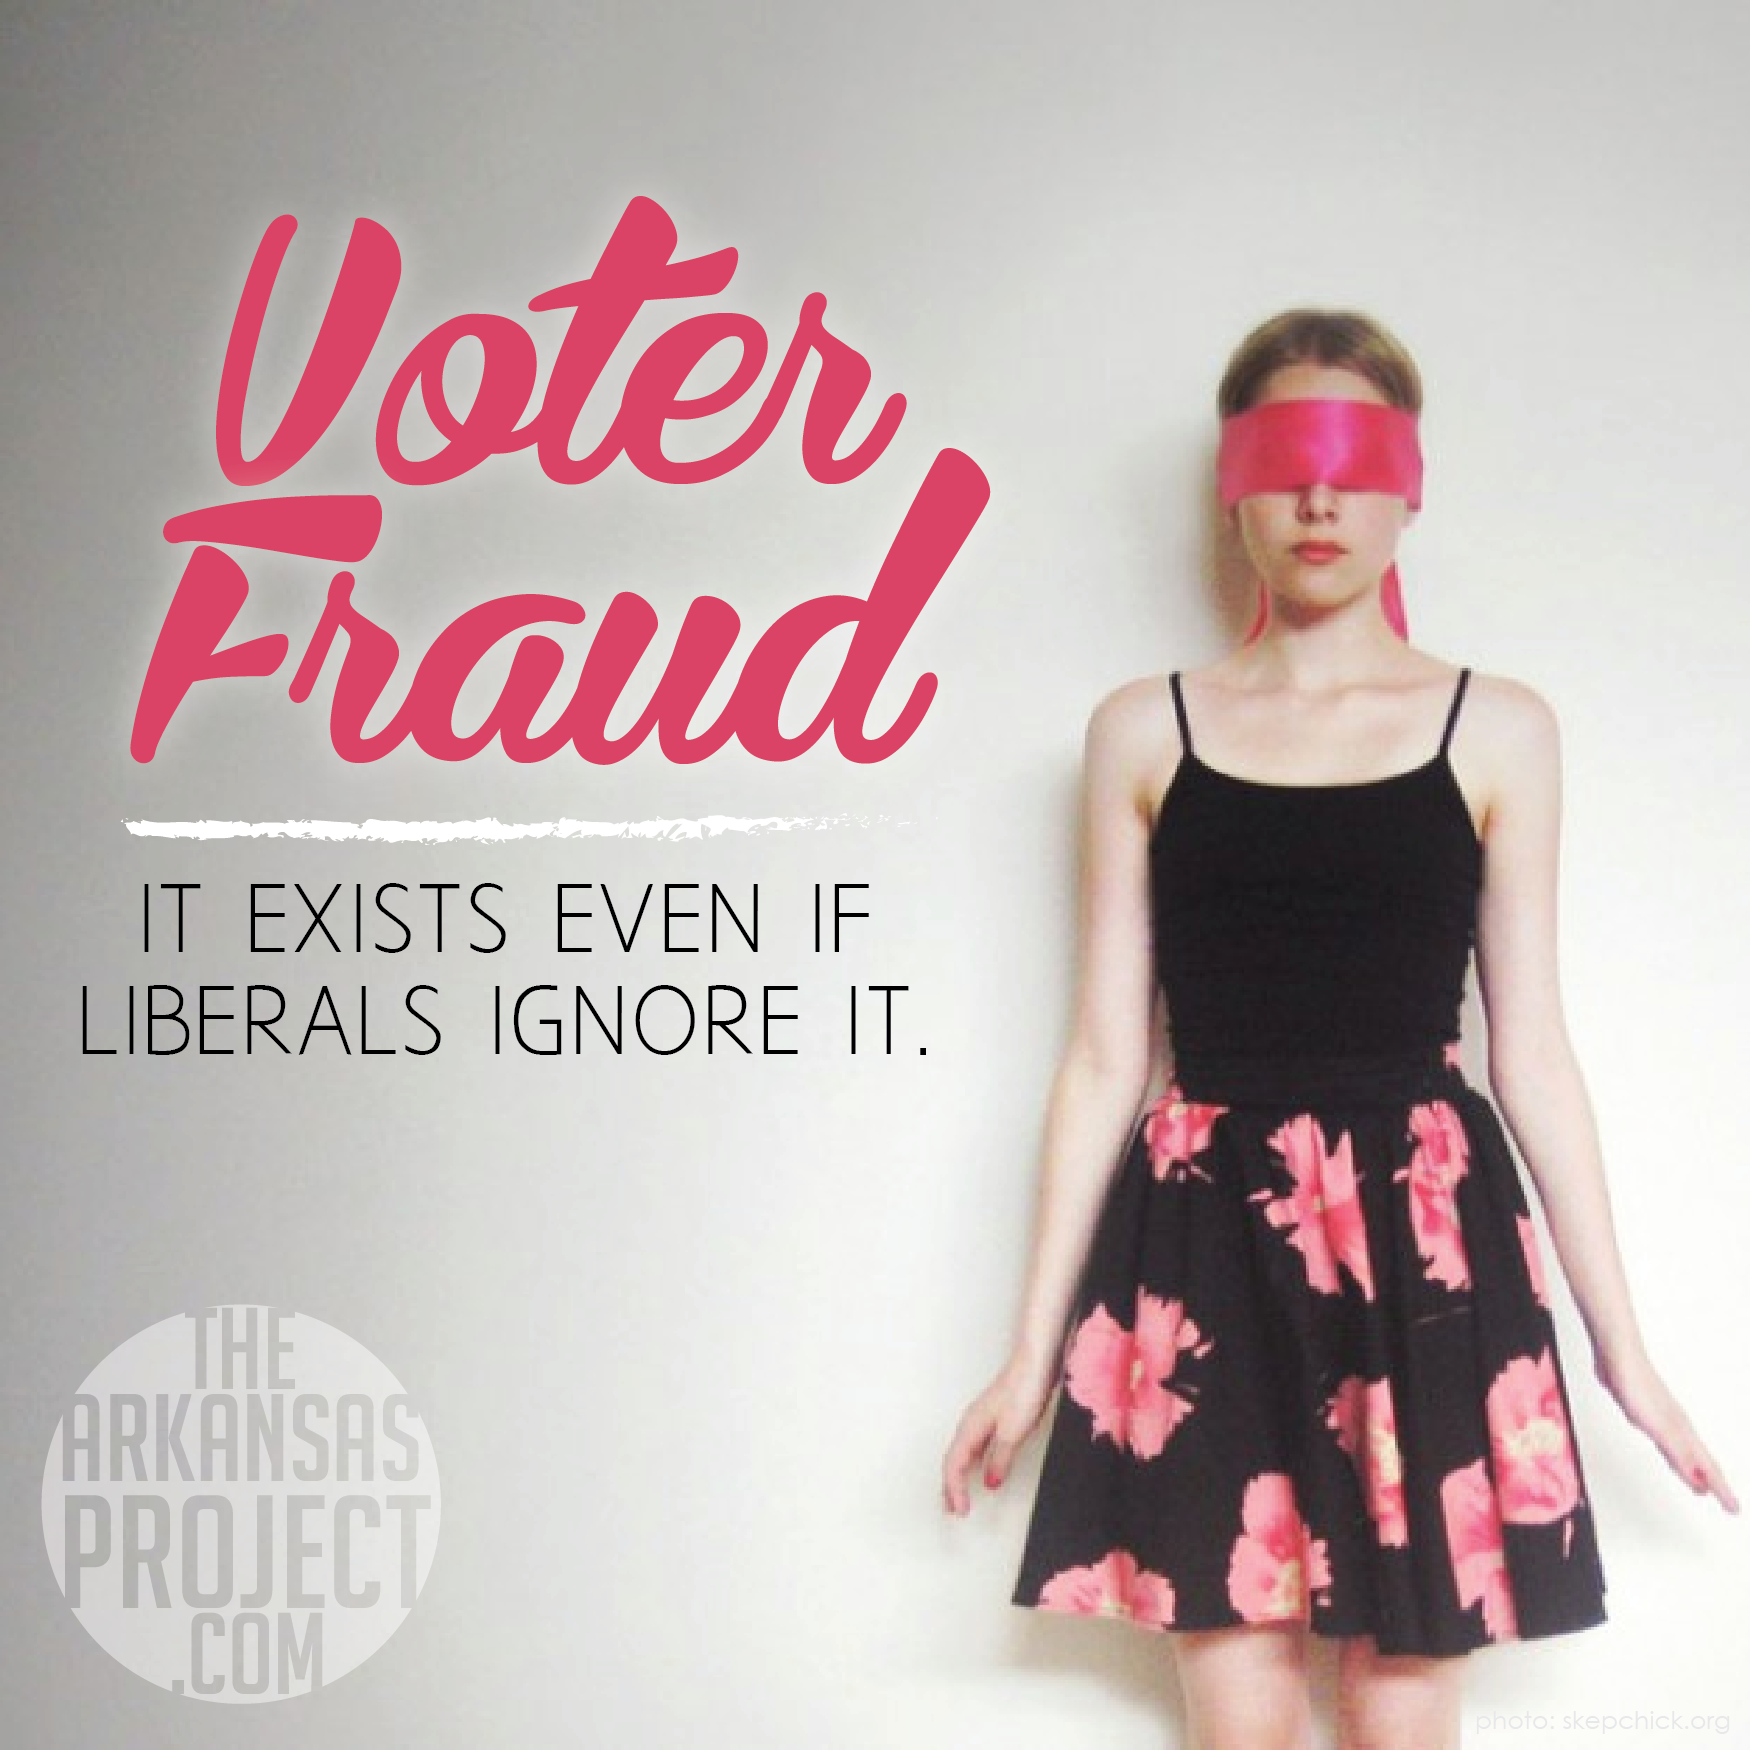 Voter Fraud Does Not Exist, Except Maybe In Wisconsin ... - photo#24